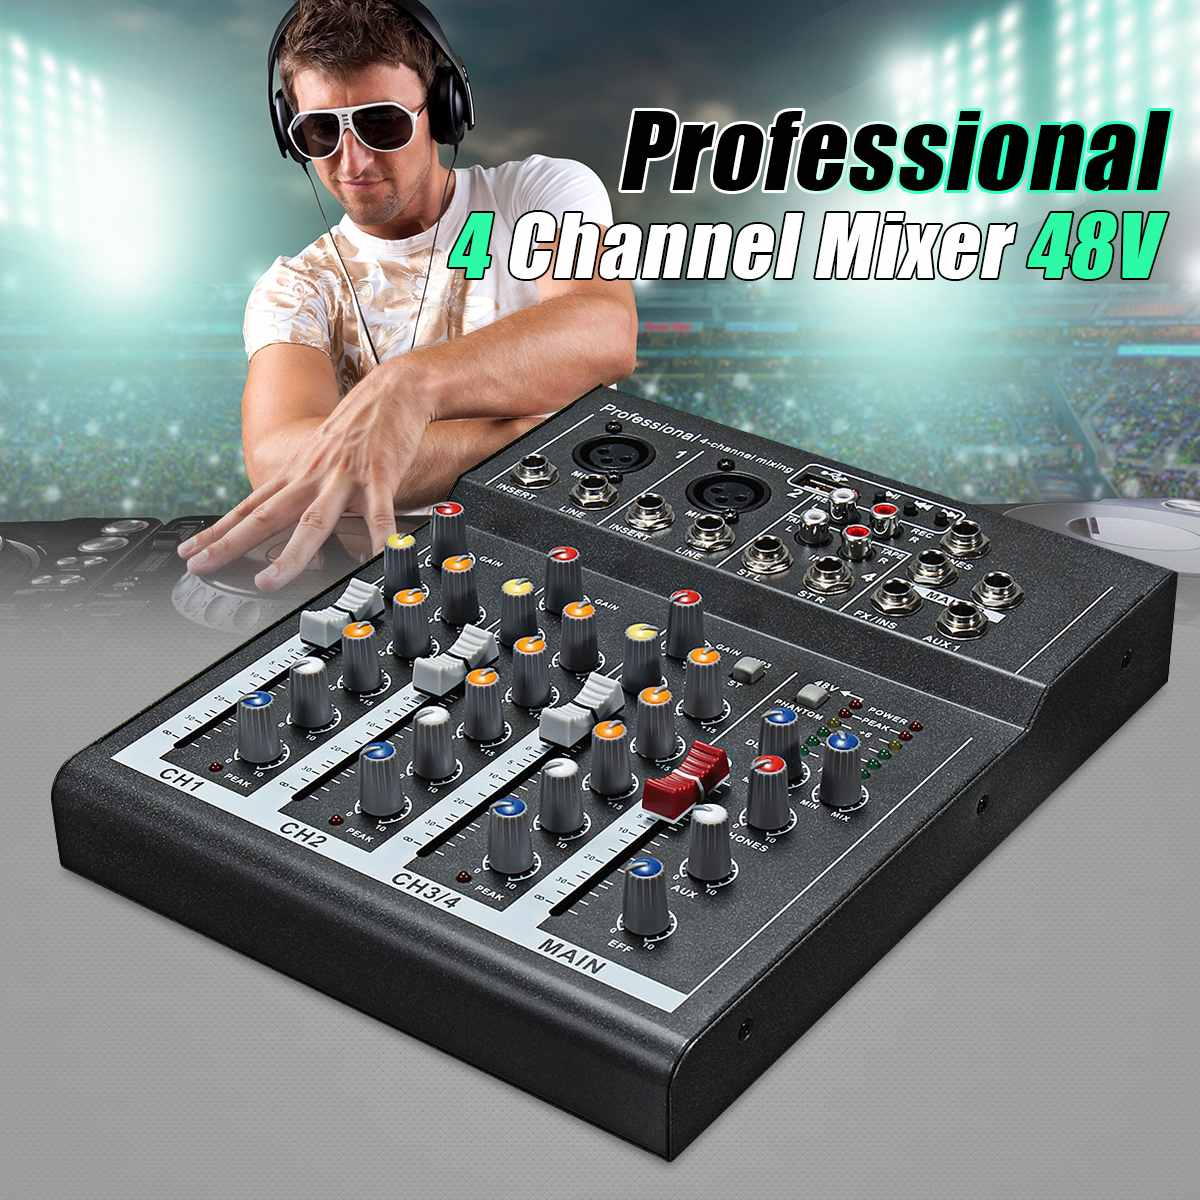 4 Channel Mini Portable Audio Mixer with USB DJ Sound Mixing Console MP3 Jack Karaoke 48V Amplifier For Karaoke KTV Match Party4 Channel Mini Portable Audio Mixer with USB DJ Sound Mixing Console MP3 Jack Karaoke 48V Amplifier For Karaoke KTV Match Party